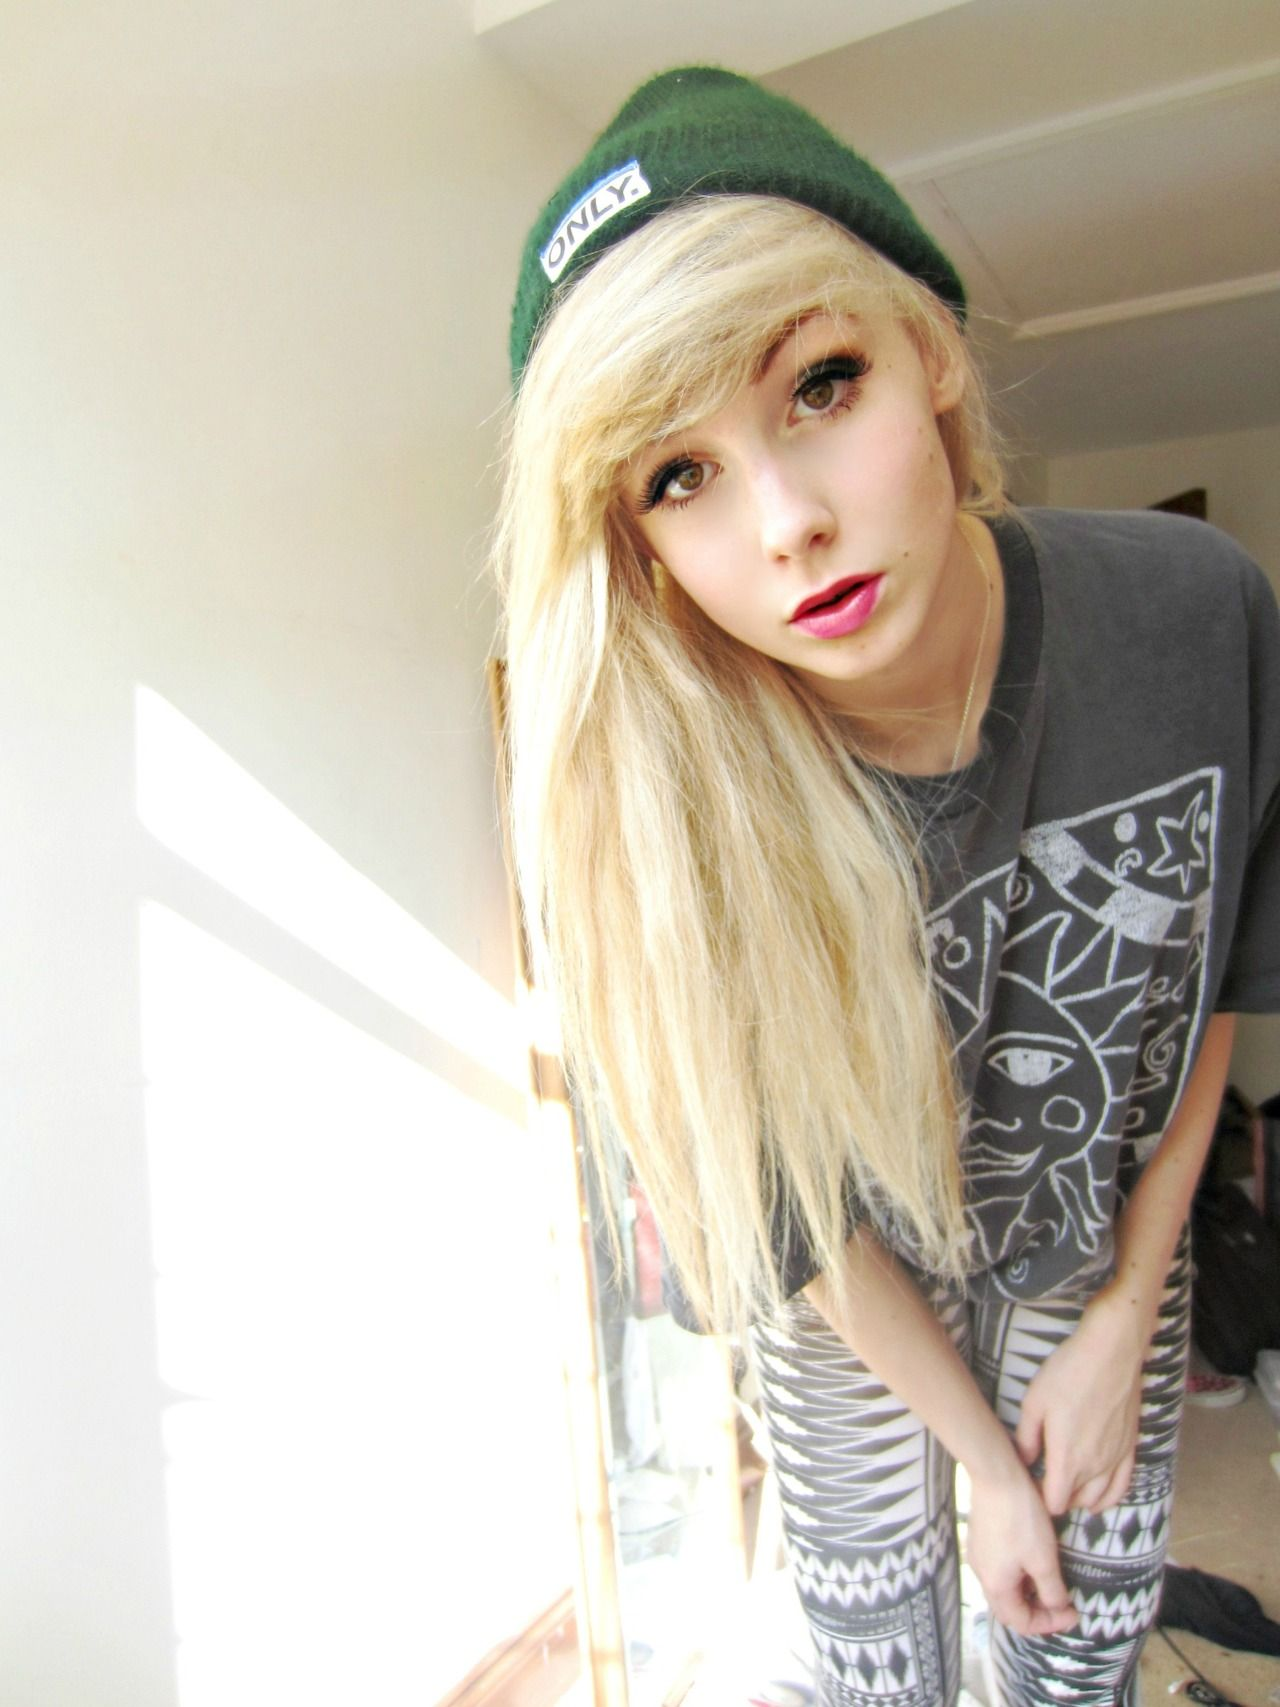 Flawless pretty tomboy style blonde beanie alternative fashion